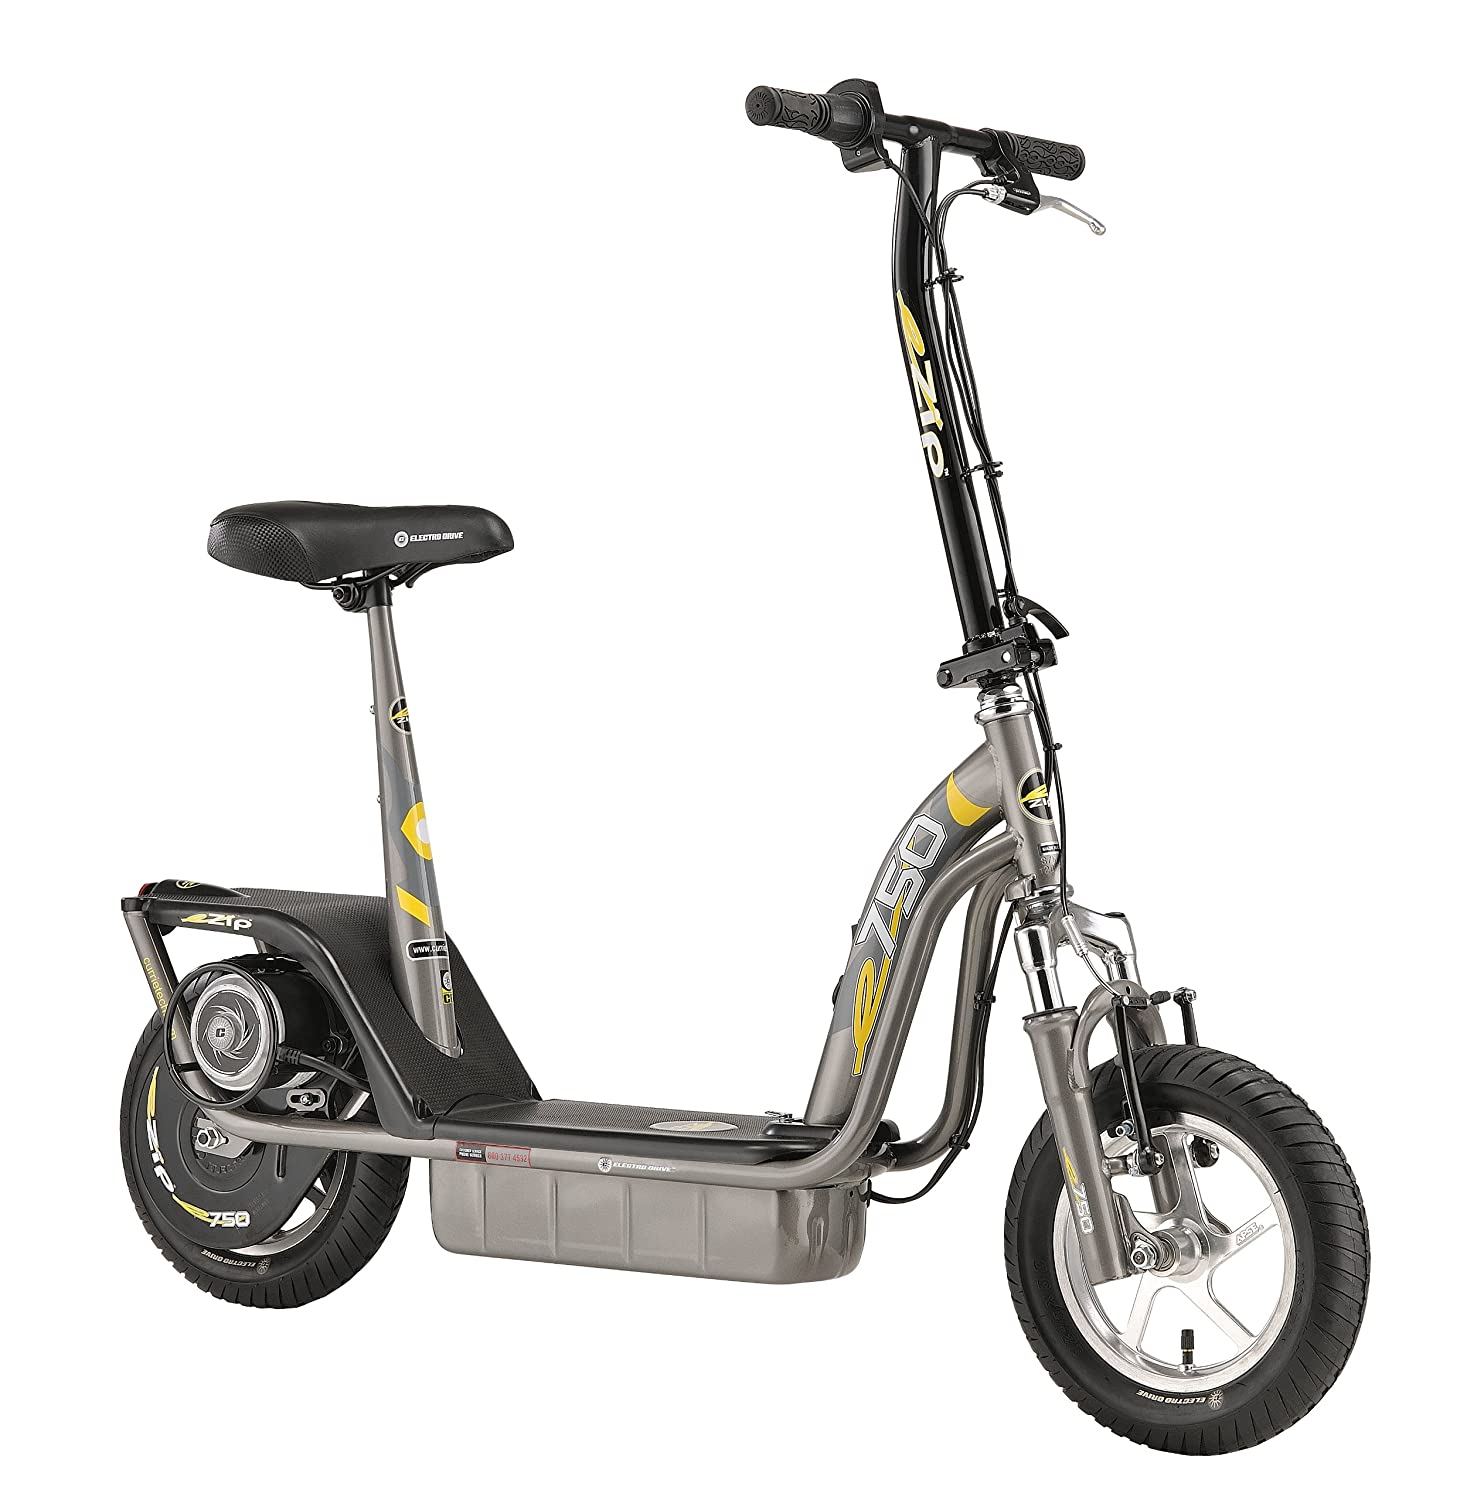 Currie Technologies 750 Ezip Electric Scooter Grey